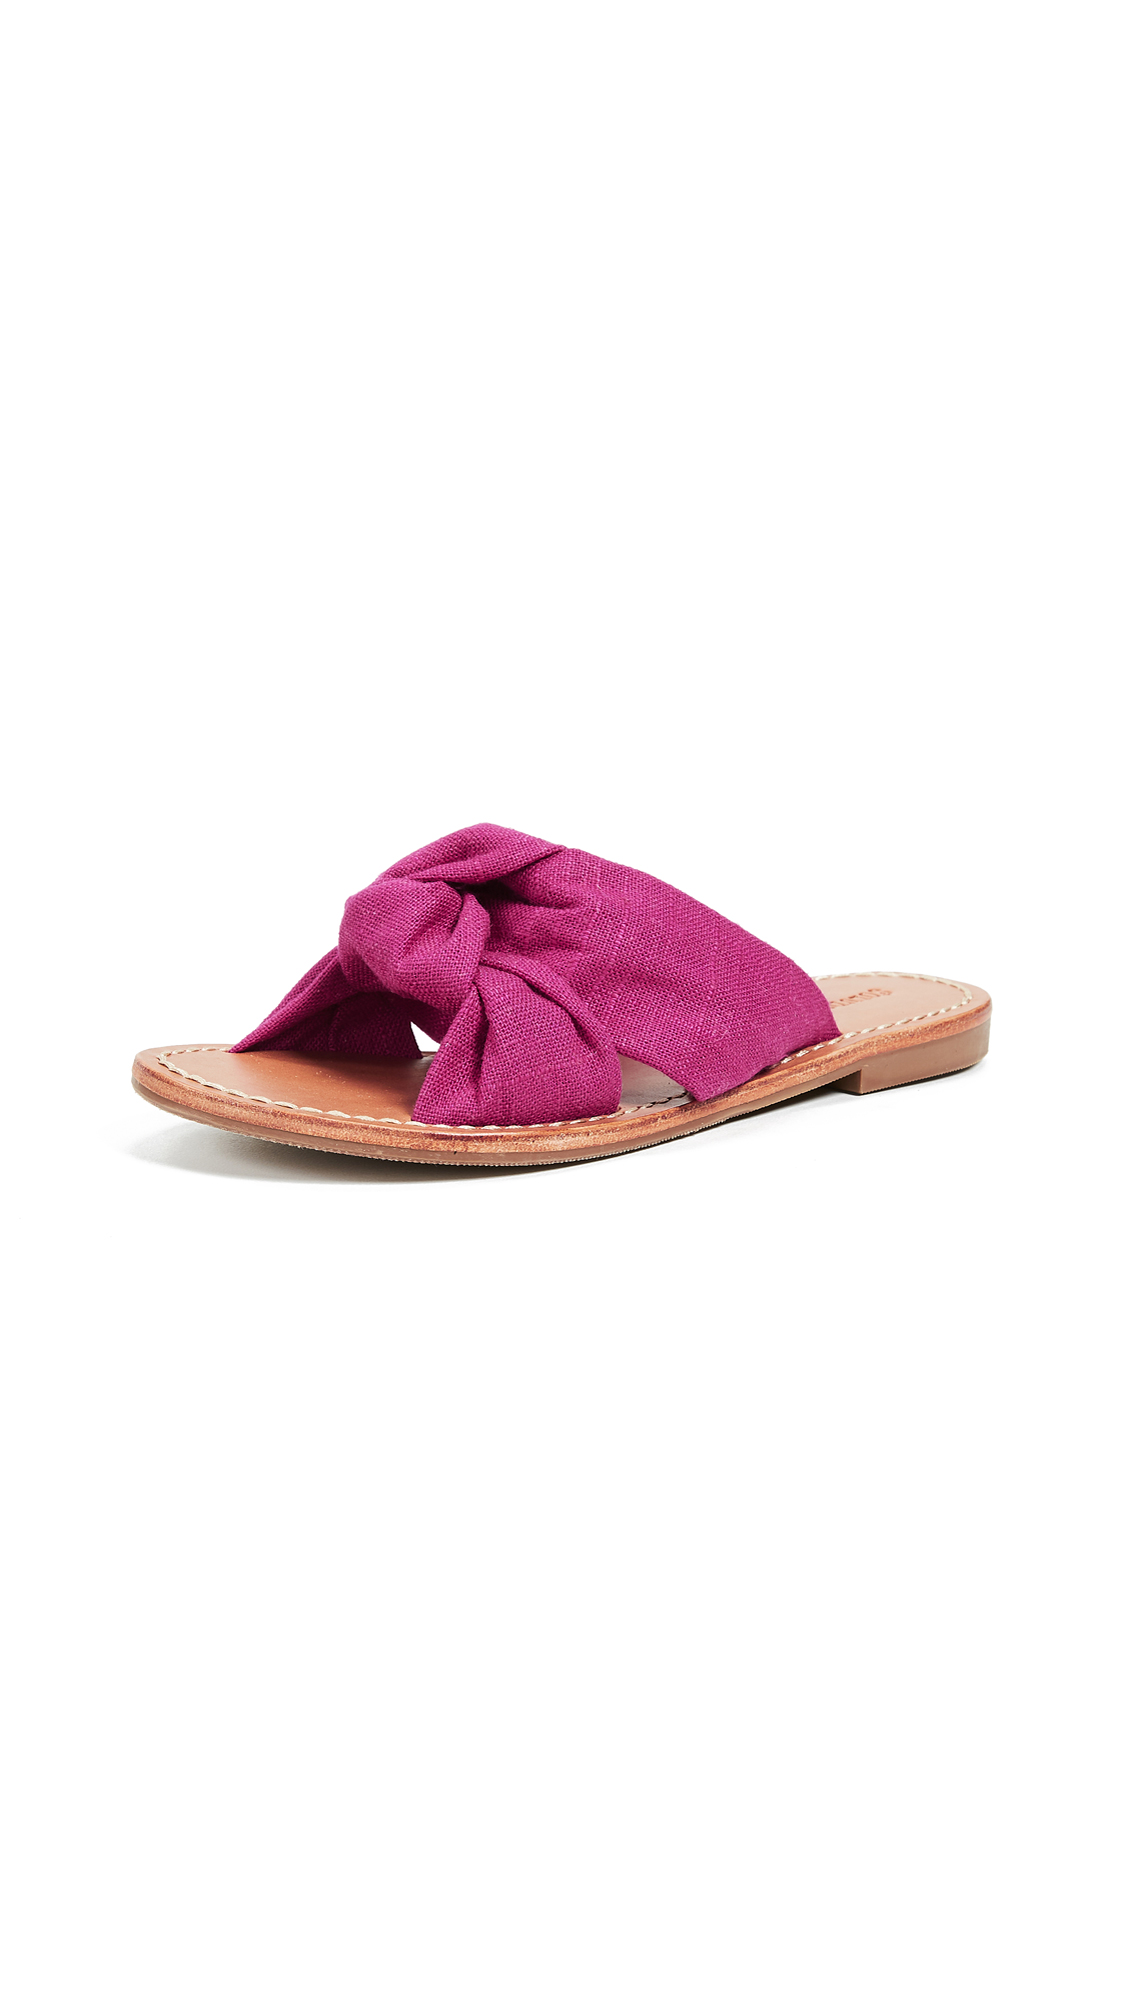 Soludos Knotted Slide Sandals - Fuchsia